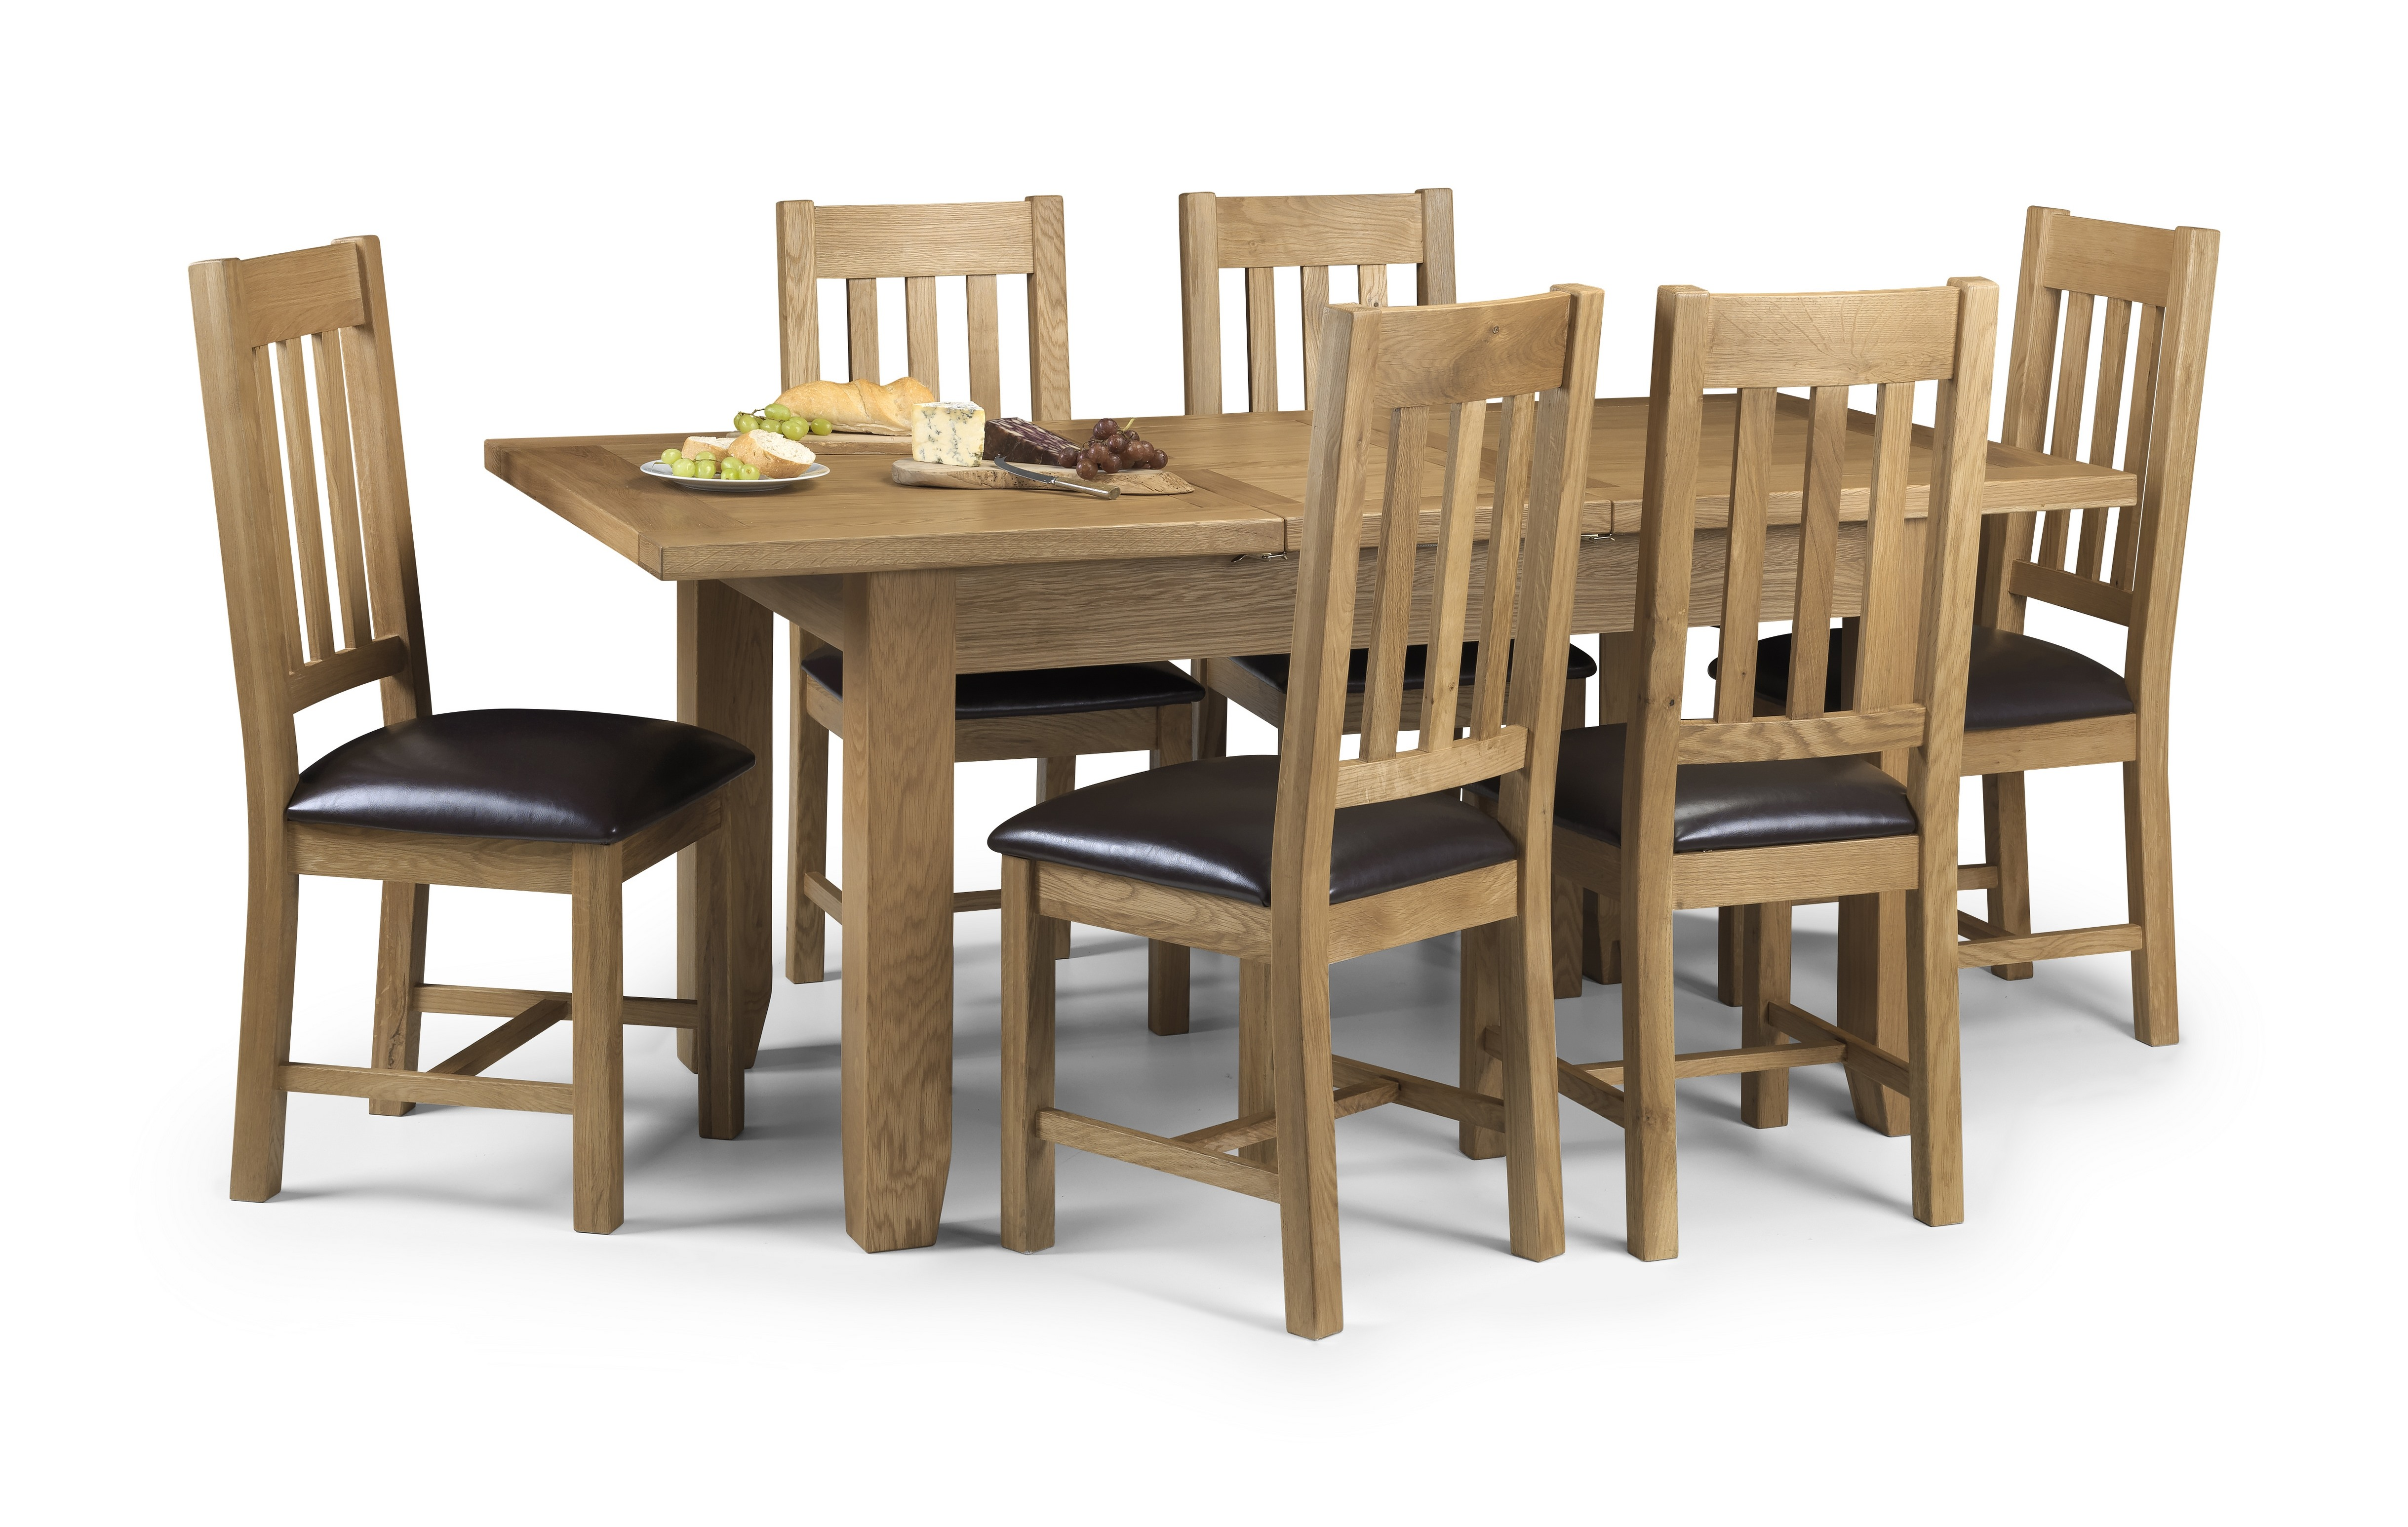 Wondrous Pre Order Due W C 22Nd January Heritage Solid Oak Dining Set Table 6 Chairs Squirreltailoven Fun Painted Chair Ideas Images Squirreltailovenorg